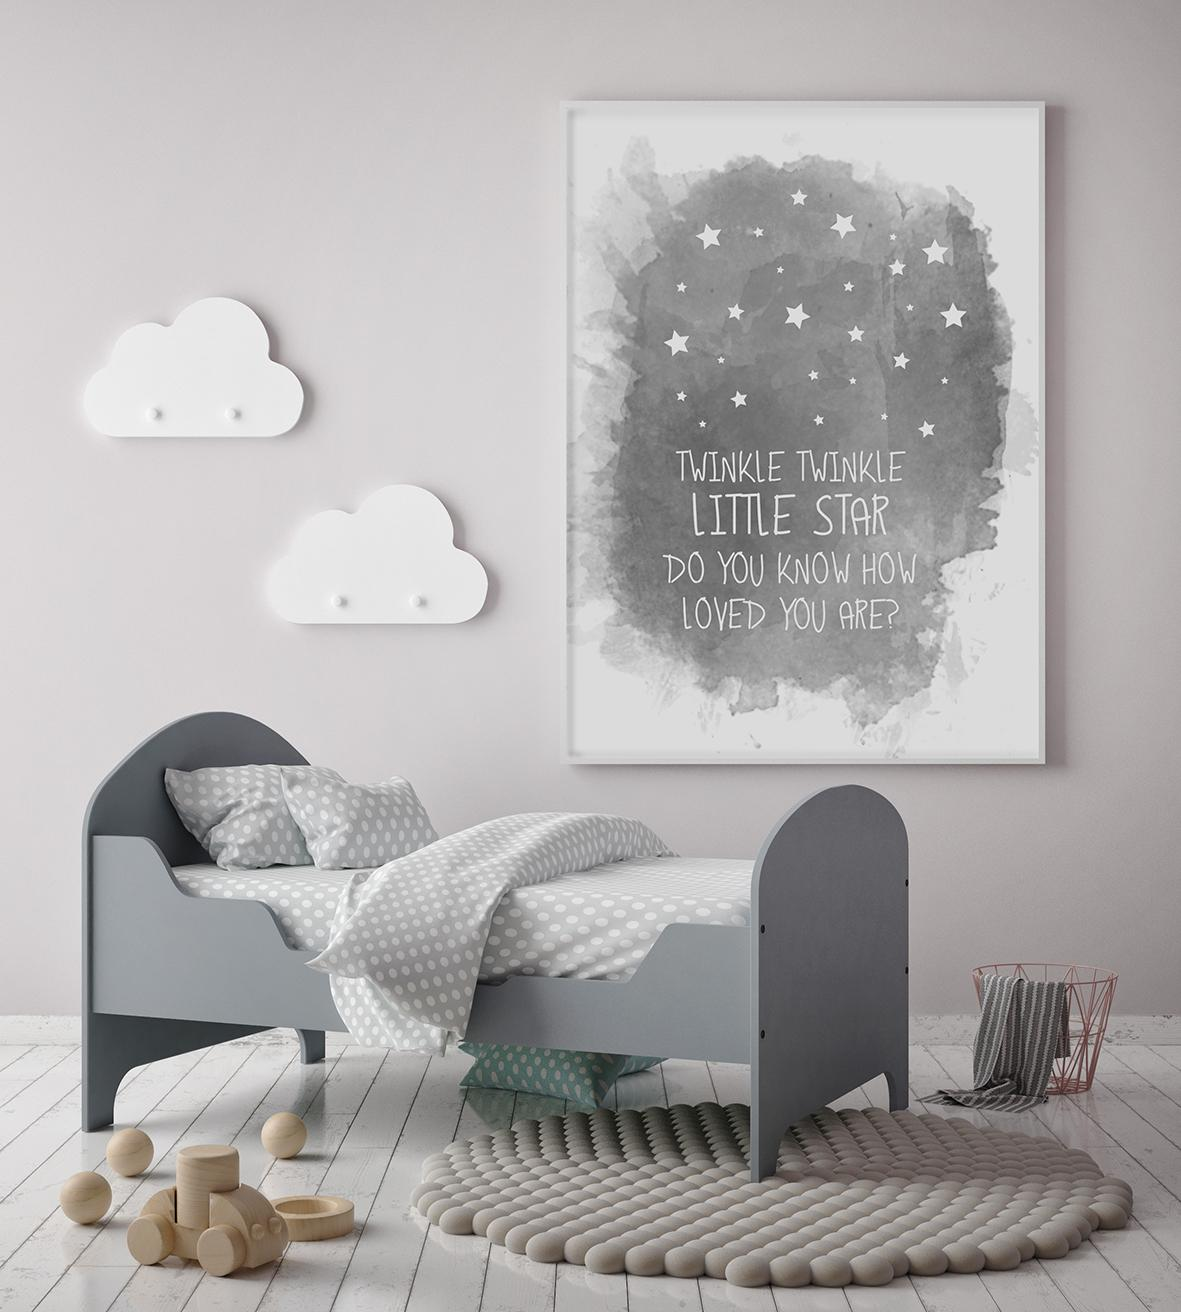 Twinkle Twinkle print in grey, printed large scale and hung in nursery